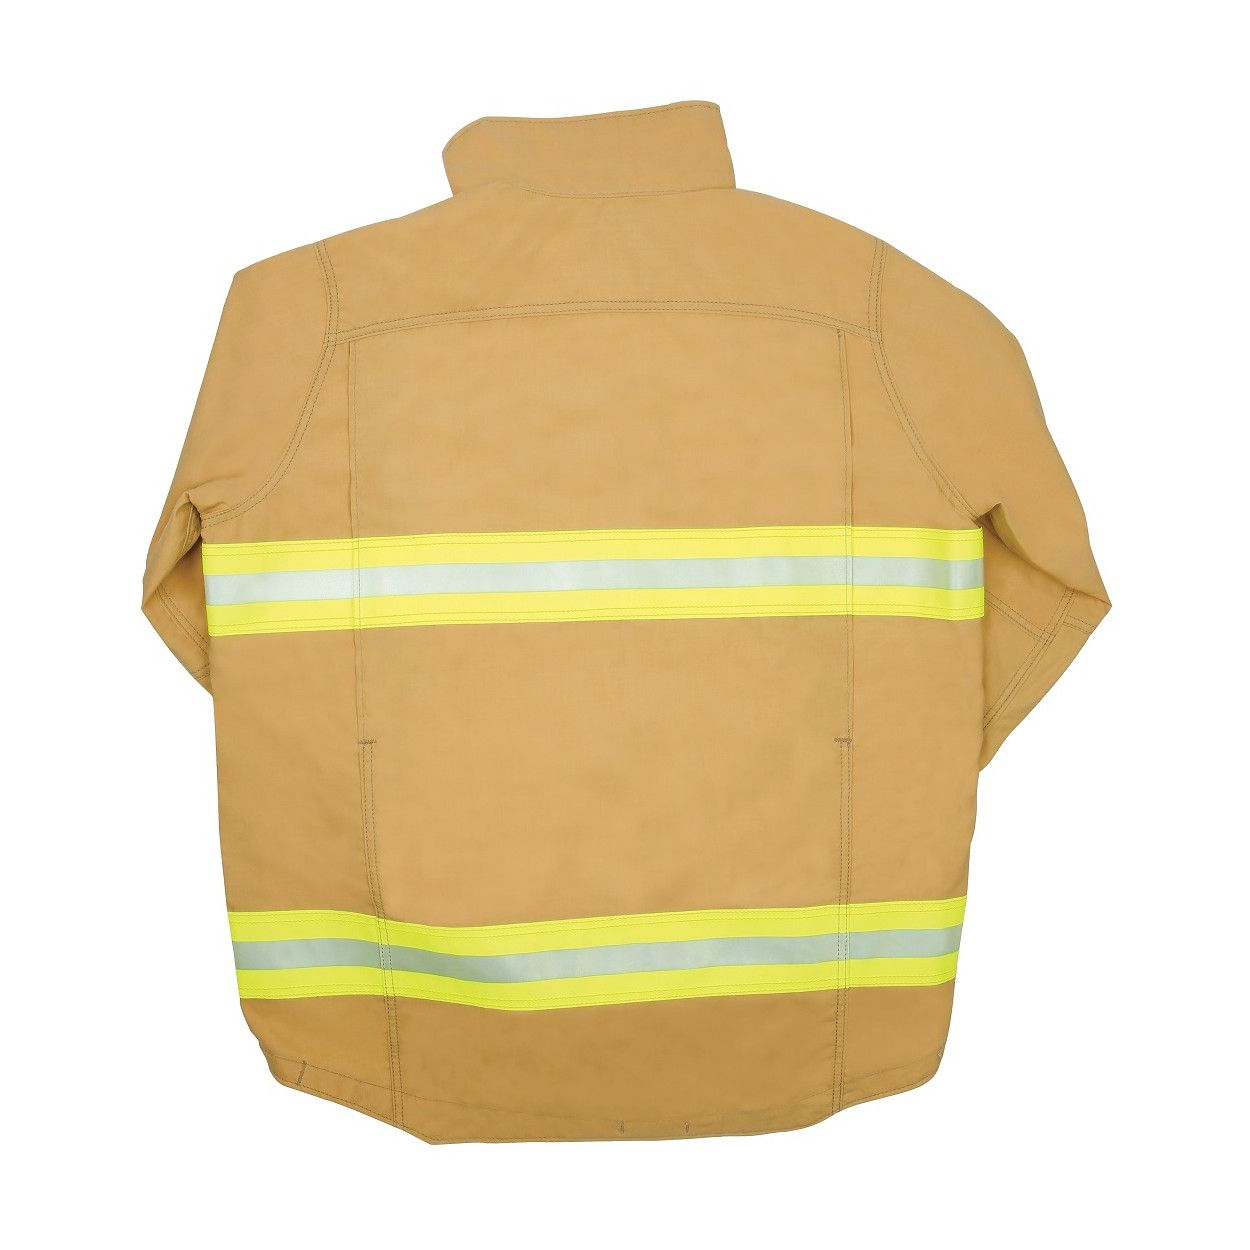 HIS-product-bycategory-firstresponder-hfr-gear-mr2-coat-back-8574-highres